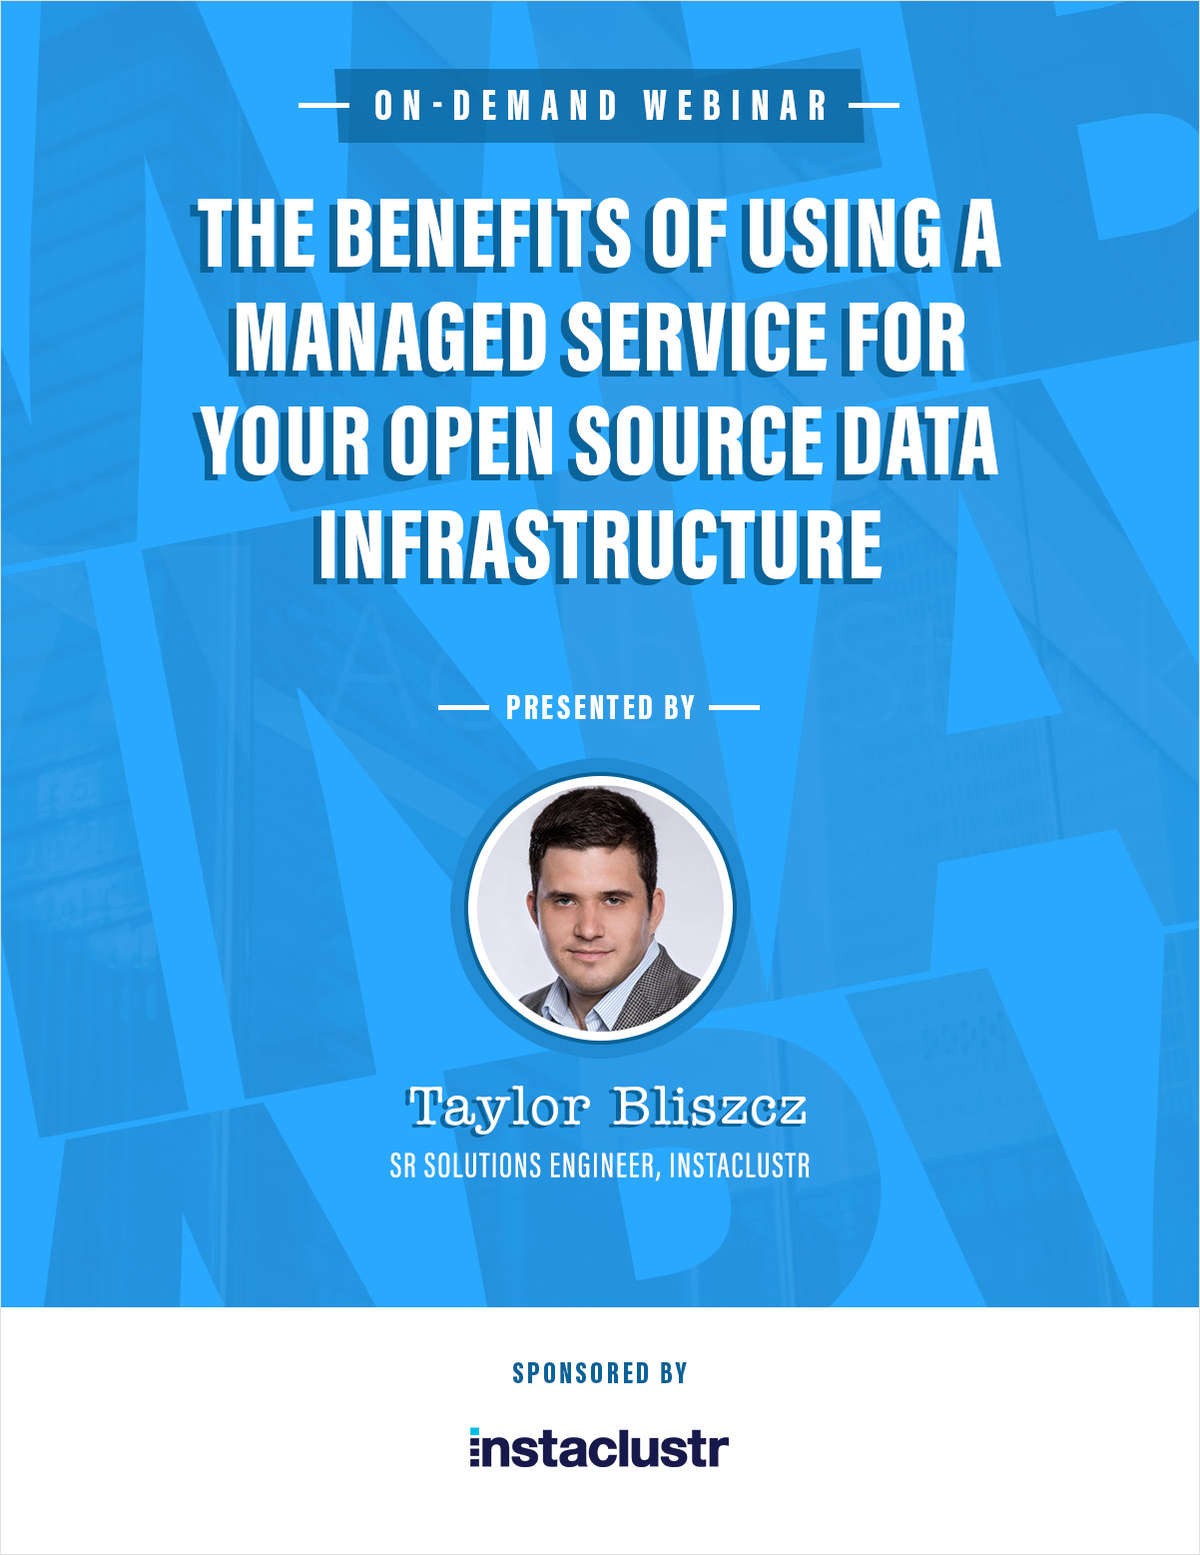 The benefits of using a managed service for your open source data infrastructure